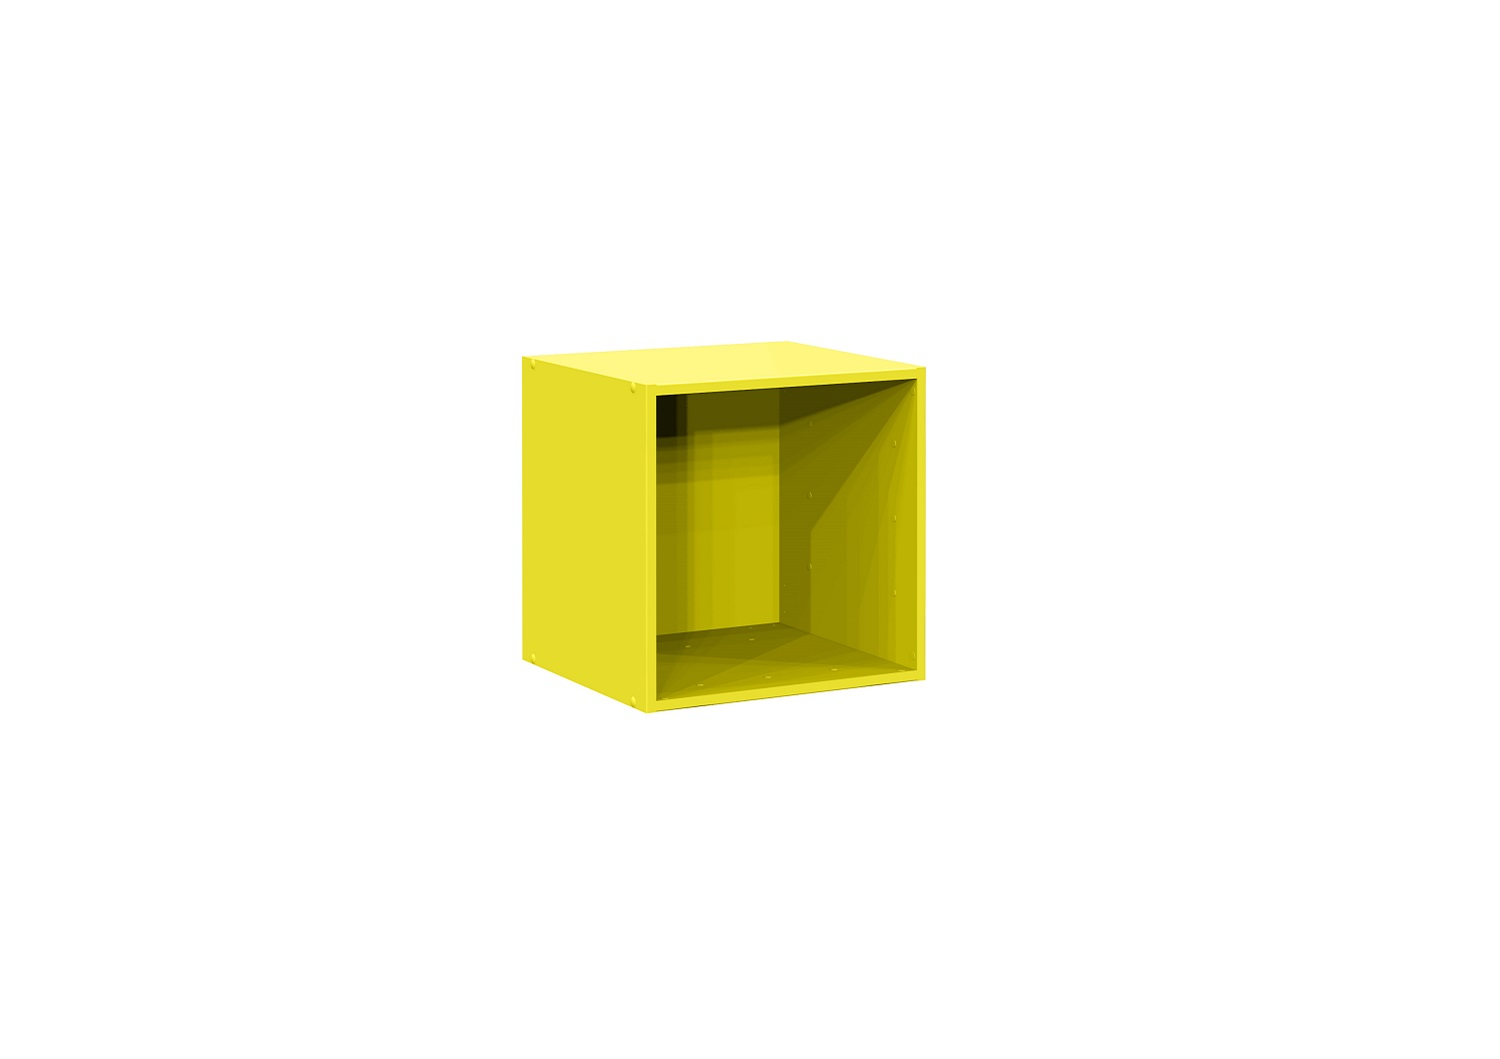 Bilrich Storage Furniture - Multi Kaz 1x1 Cube Green